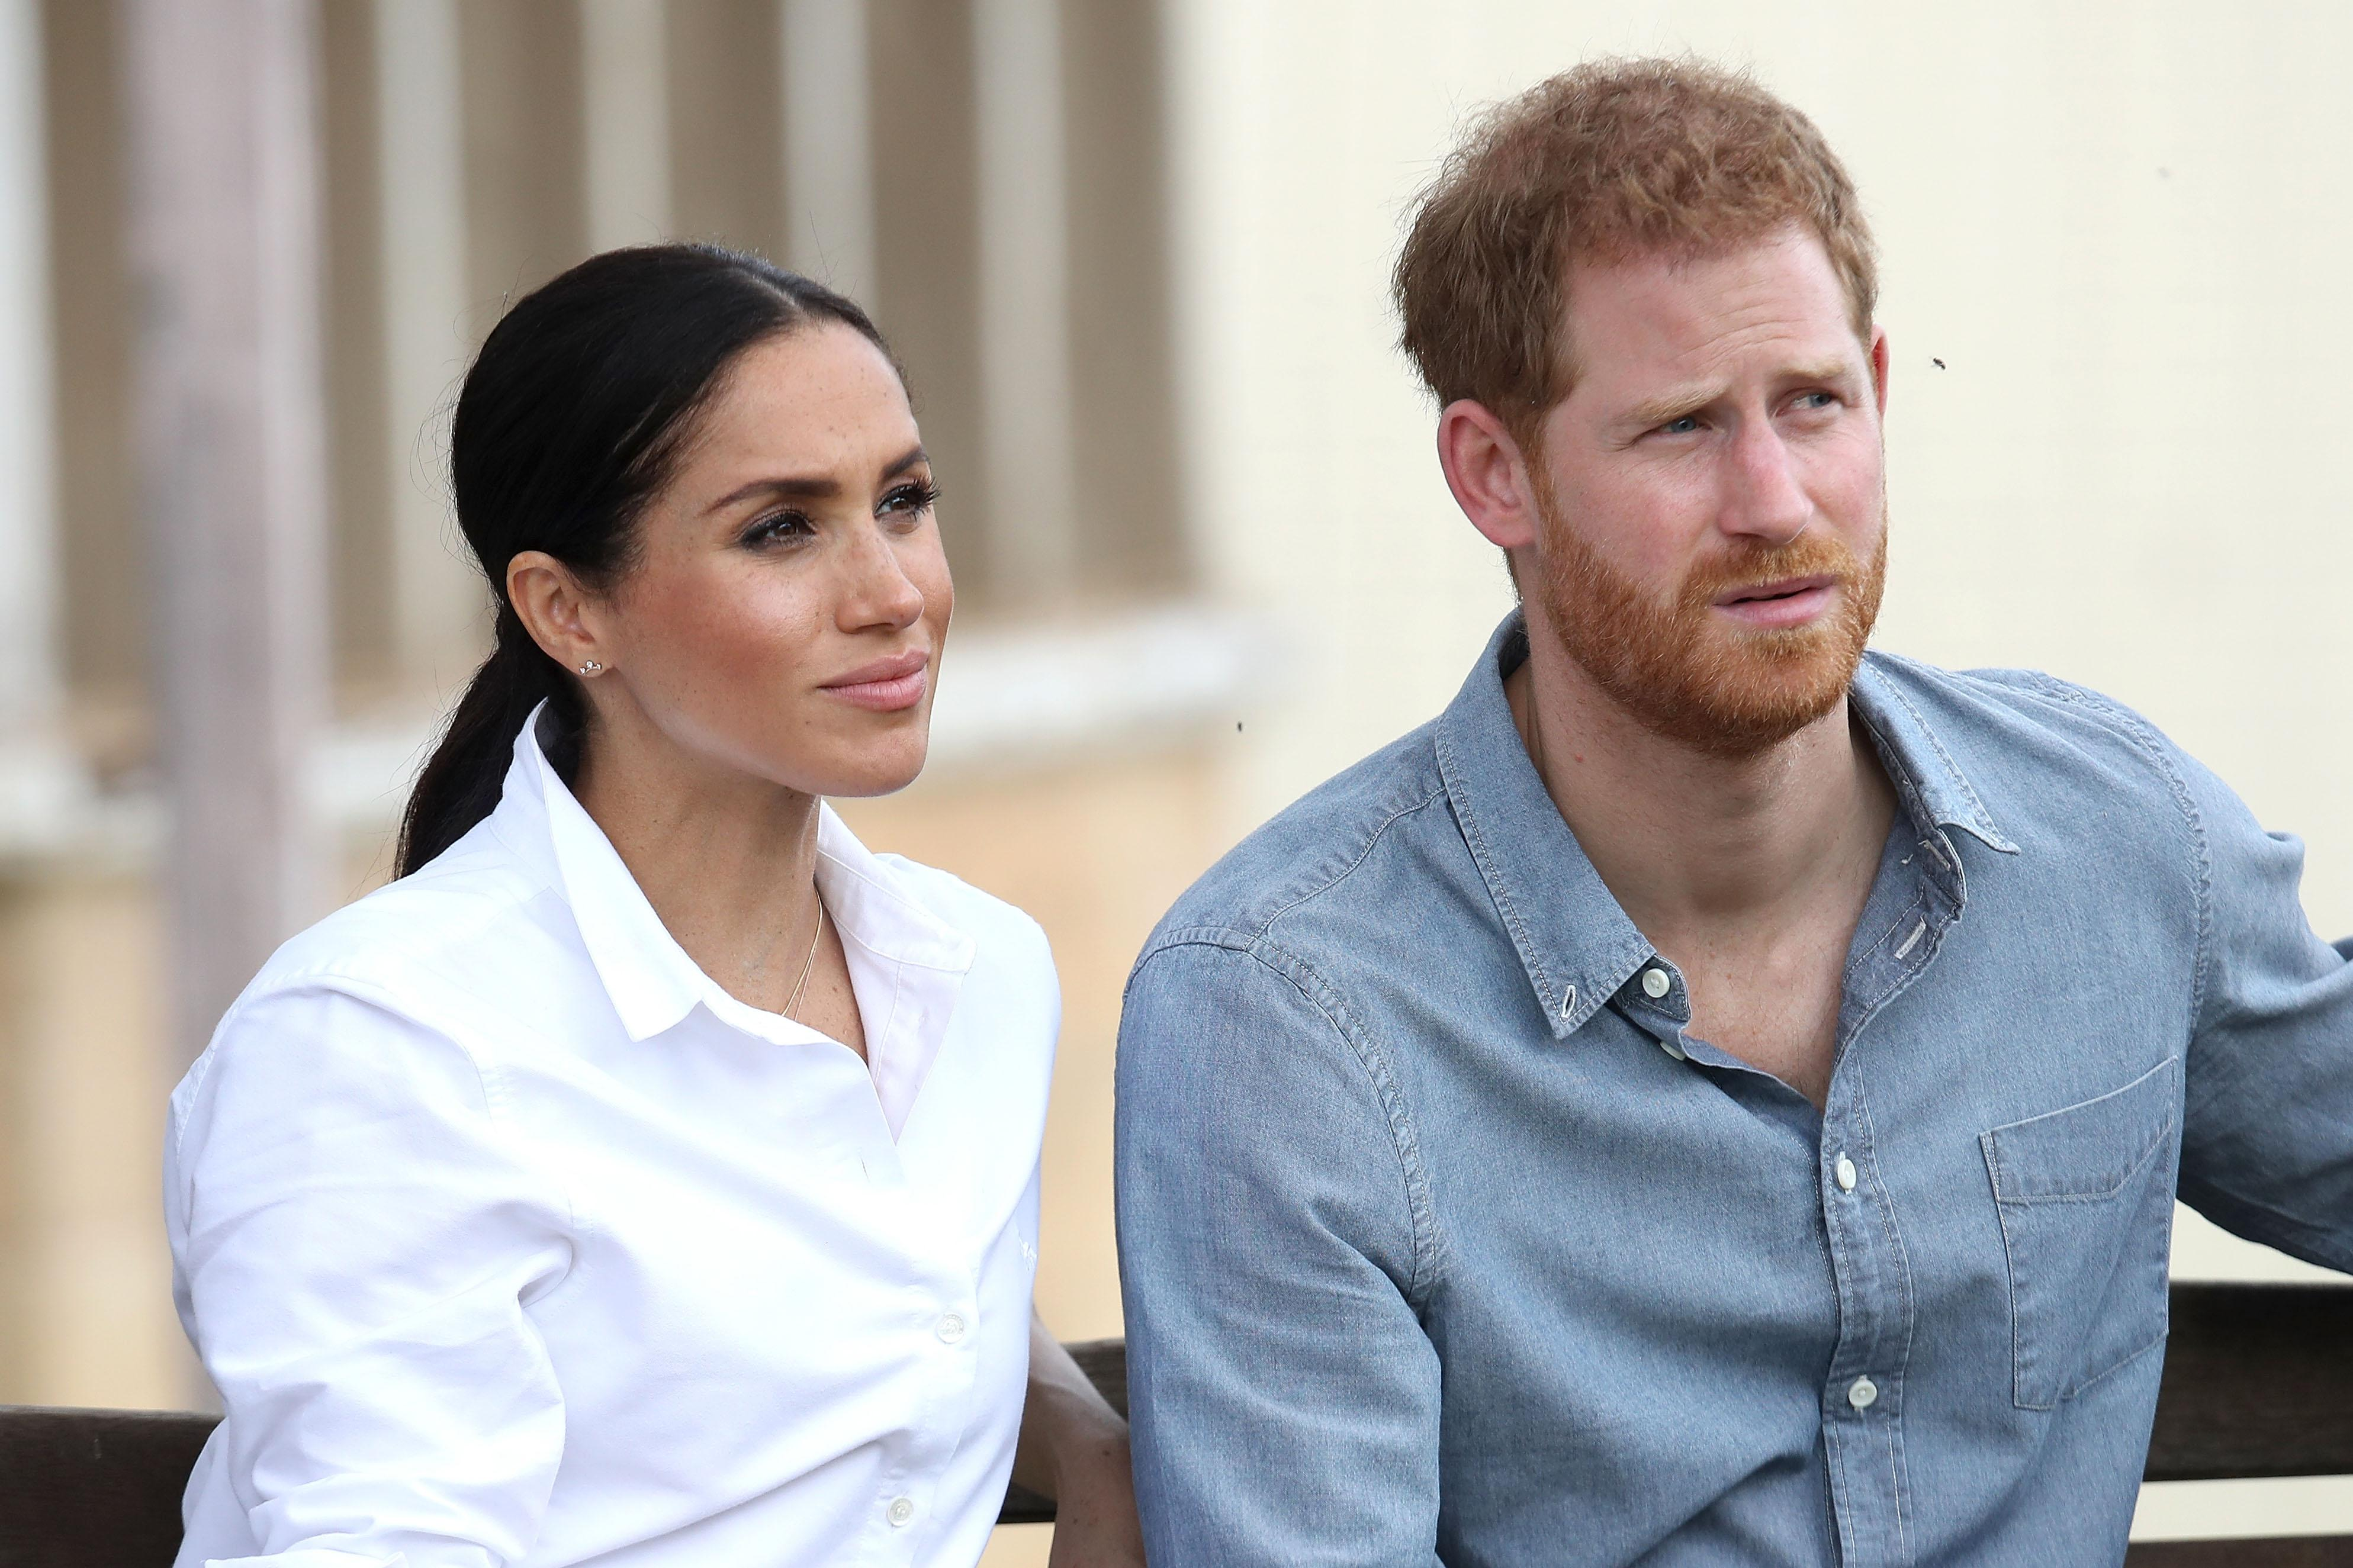 Thomas Markle says Meghan's treating him worse than a murderer